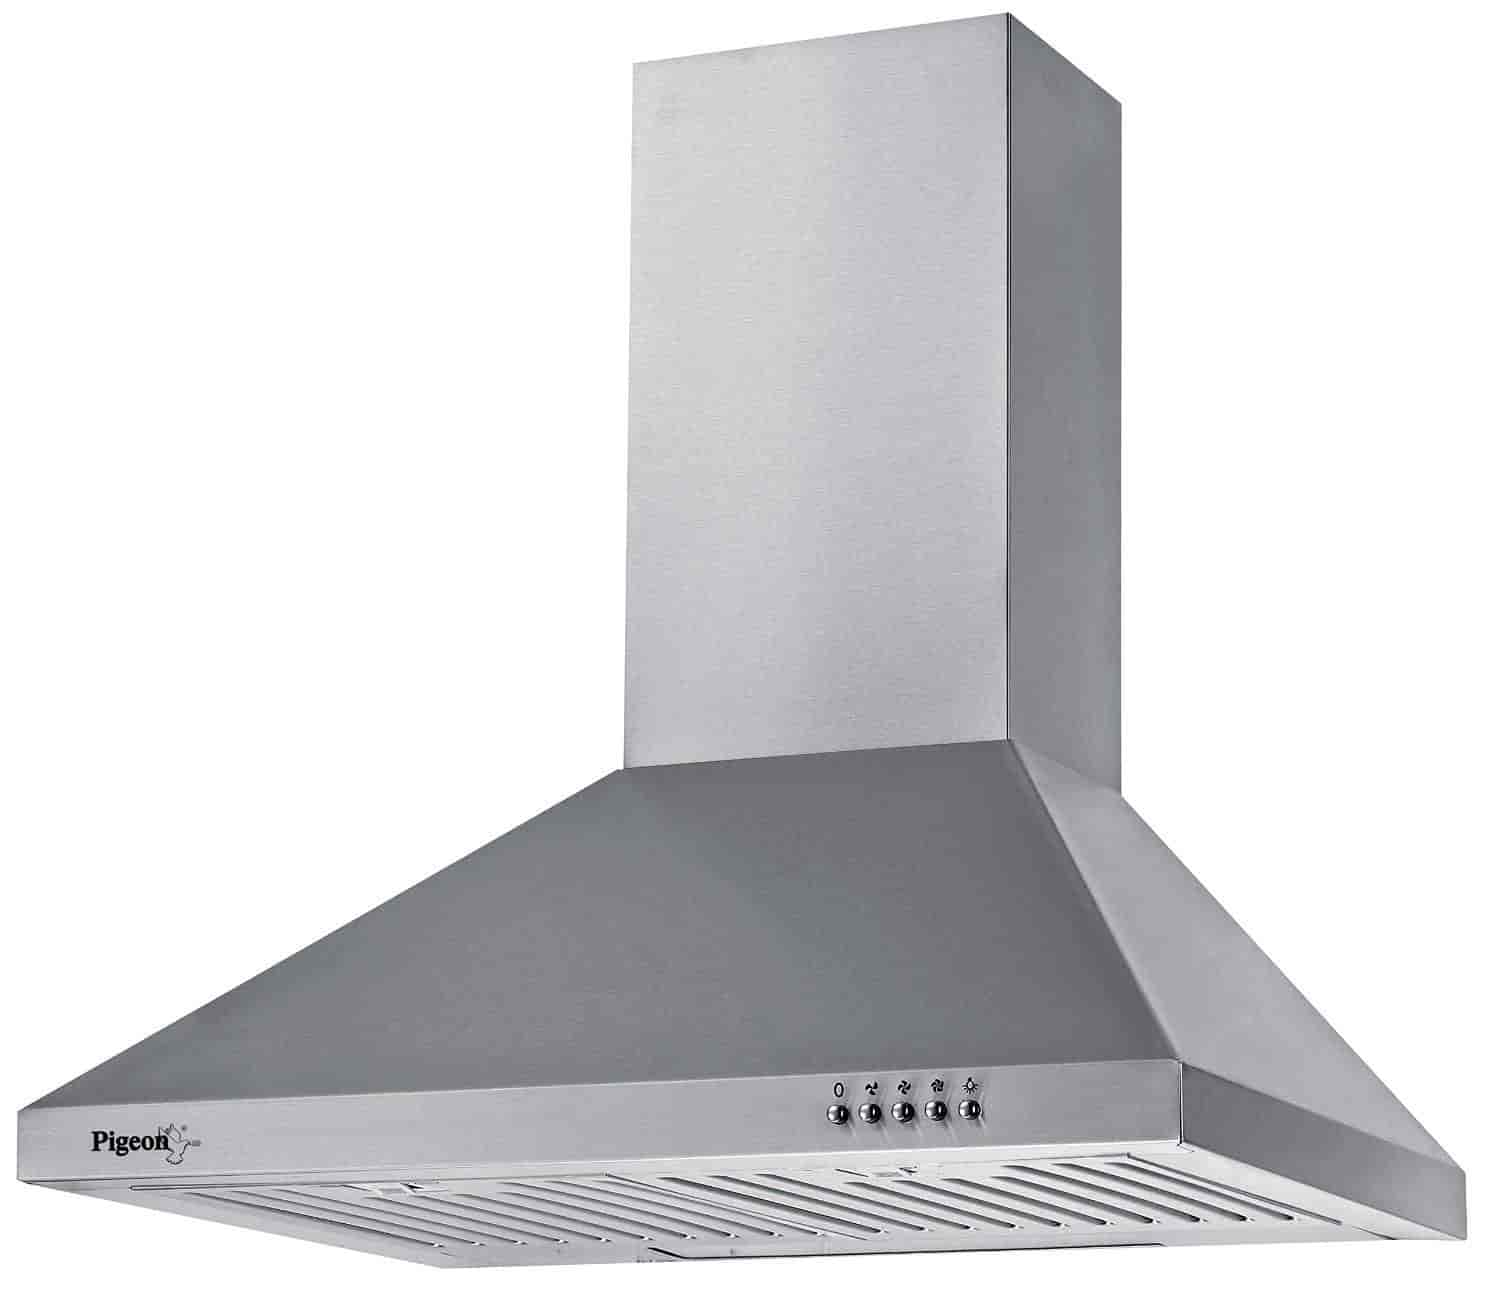 Buy Pigeon Sterling Kitchen Chimney, Features, Price, Reviews Online ...